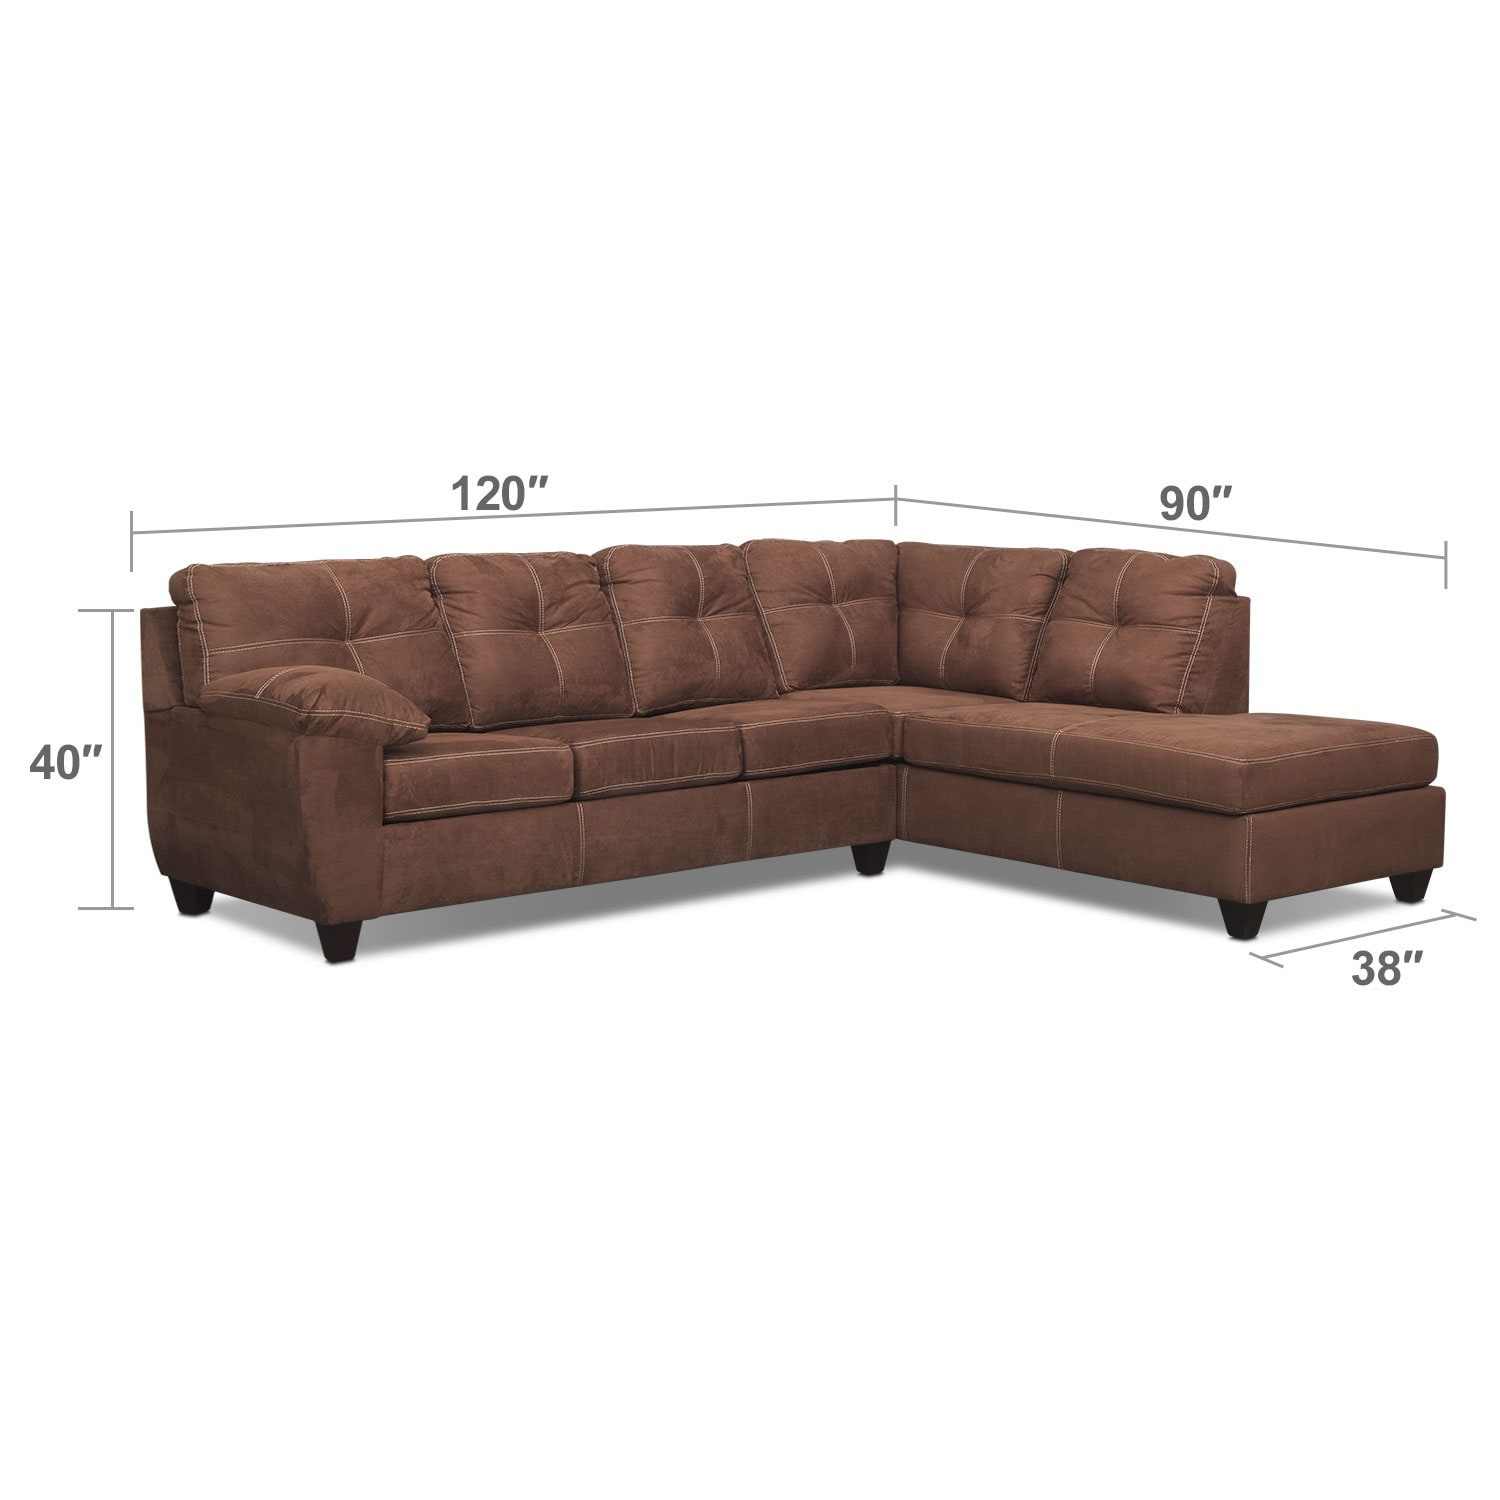 Living Room Furniture - Rialto 2-Piece Memory Foam Sleeper Sectional with Right-Facing Chaise - Coffee